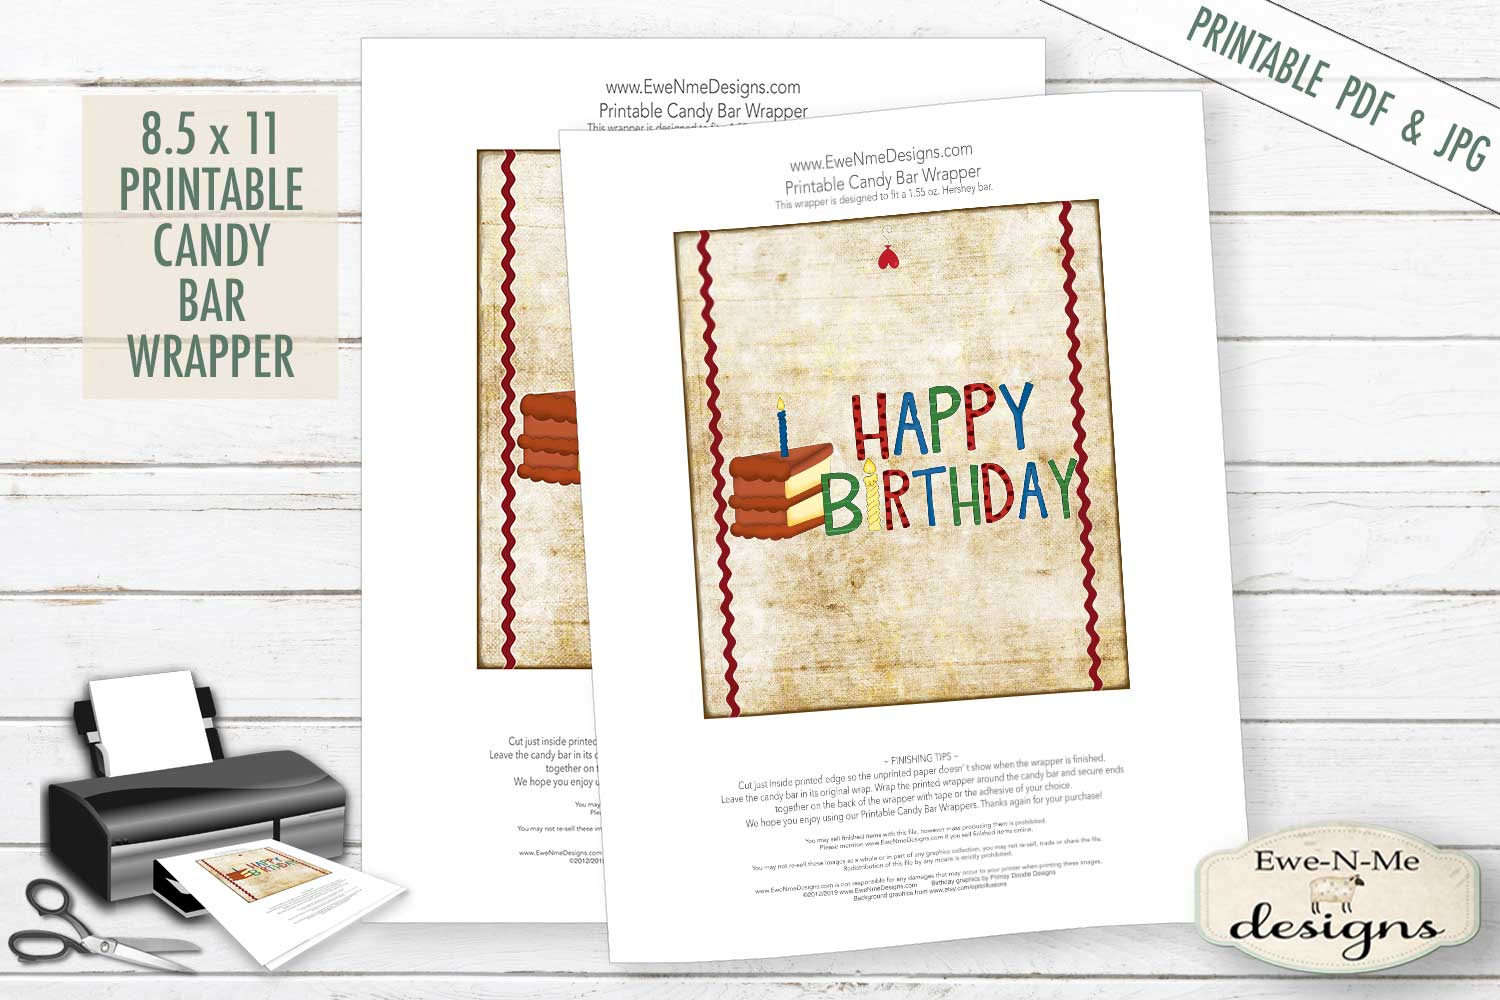 Happy Birthday Candy Bar Wrapper- Hershey Wrapper - PDF JPG example image 2